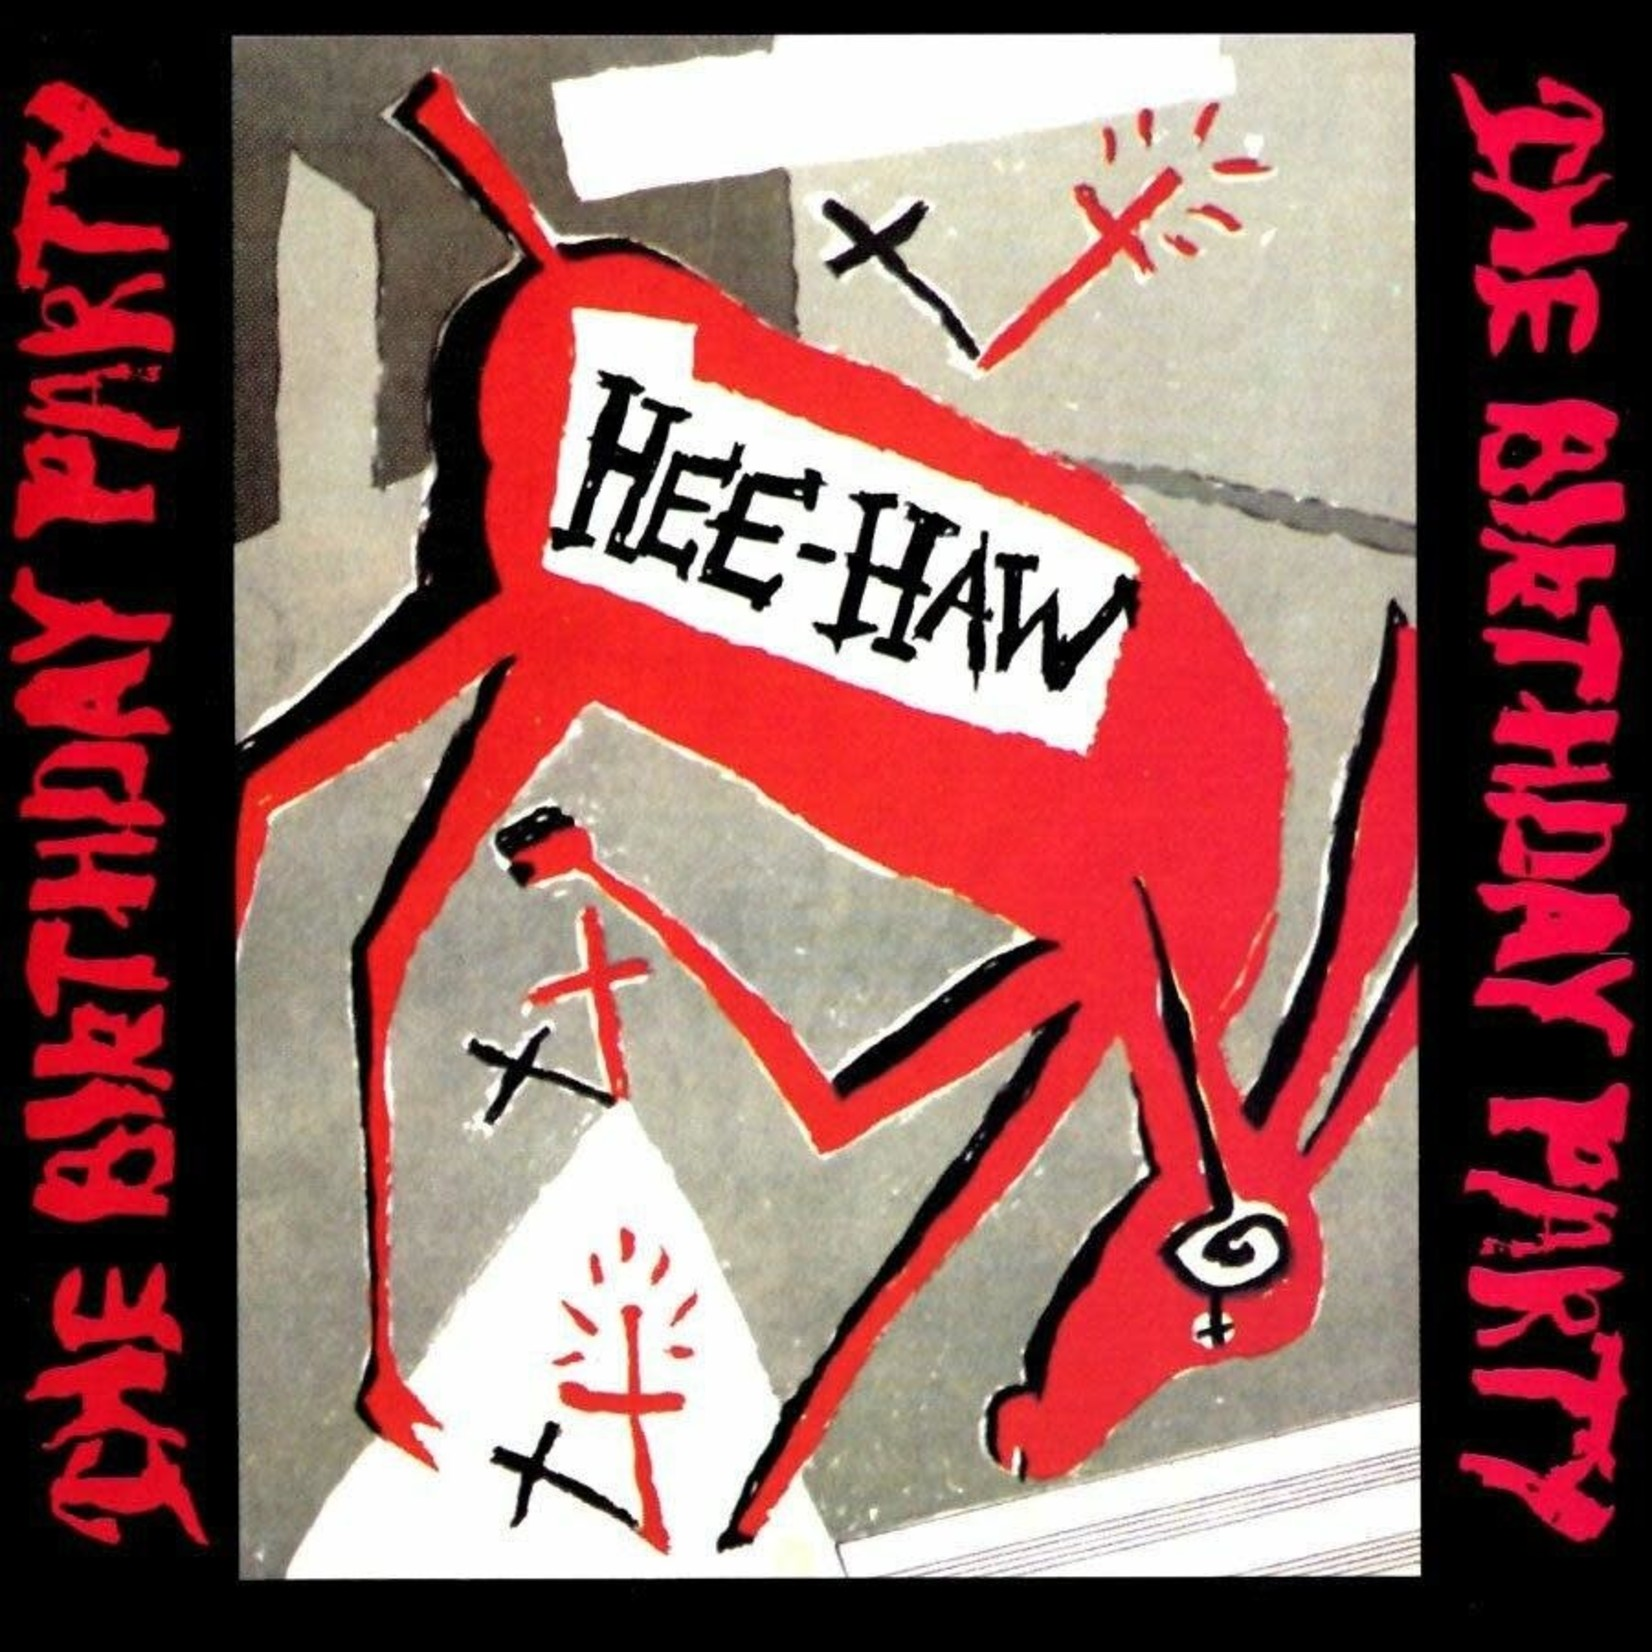 [New] Birthday Party: Hee-Haw (red vinyl)